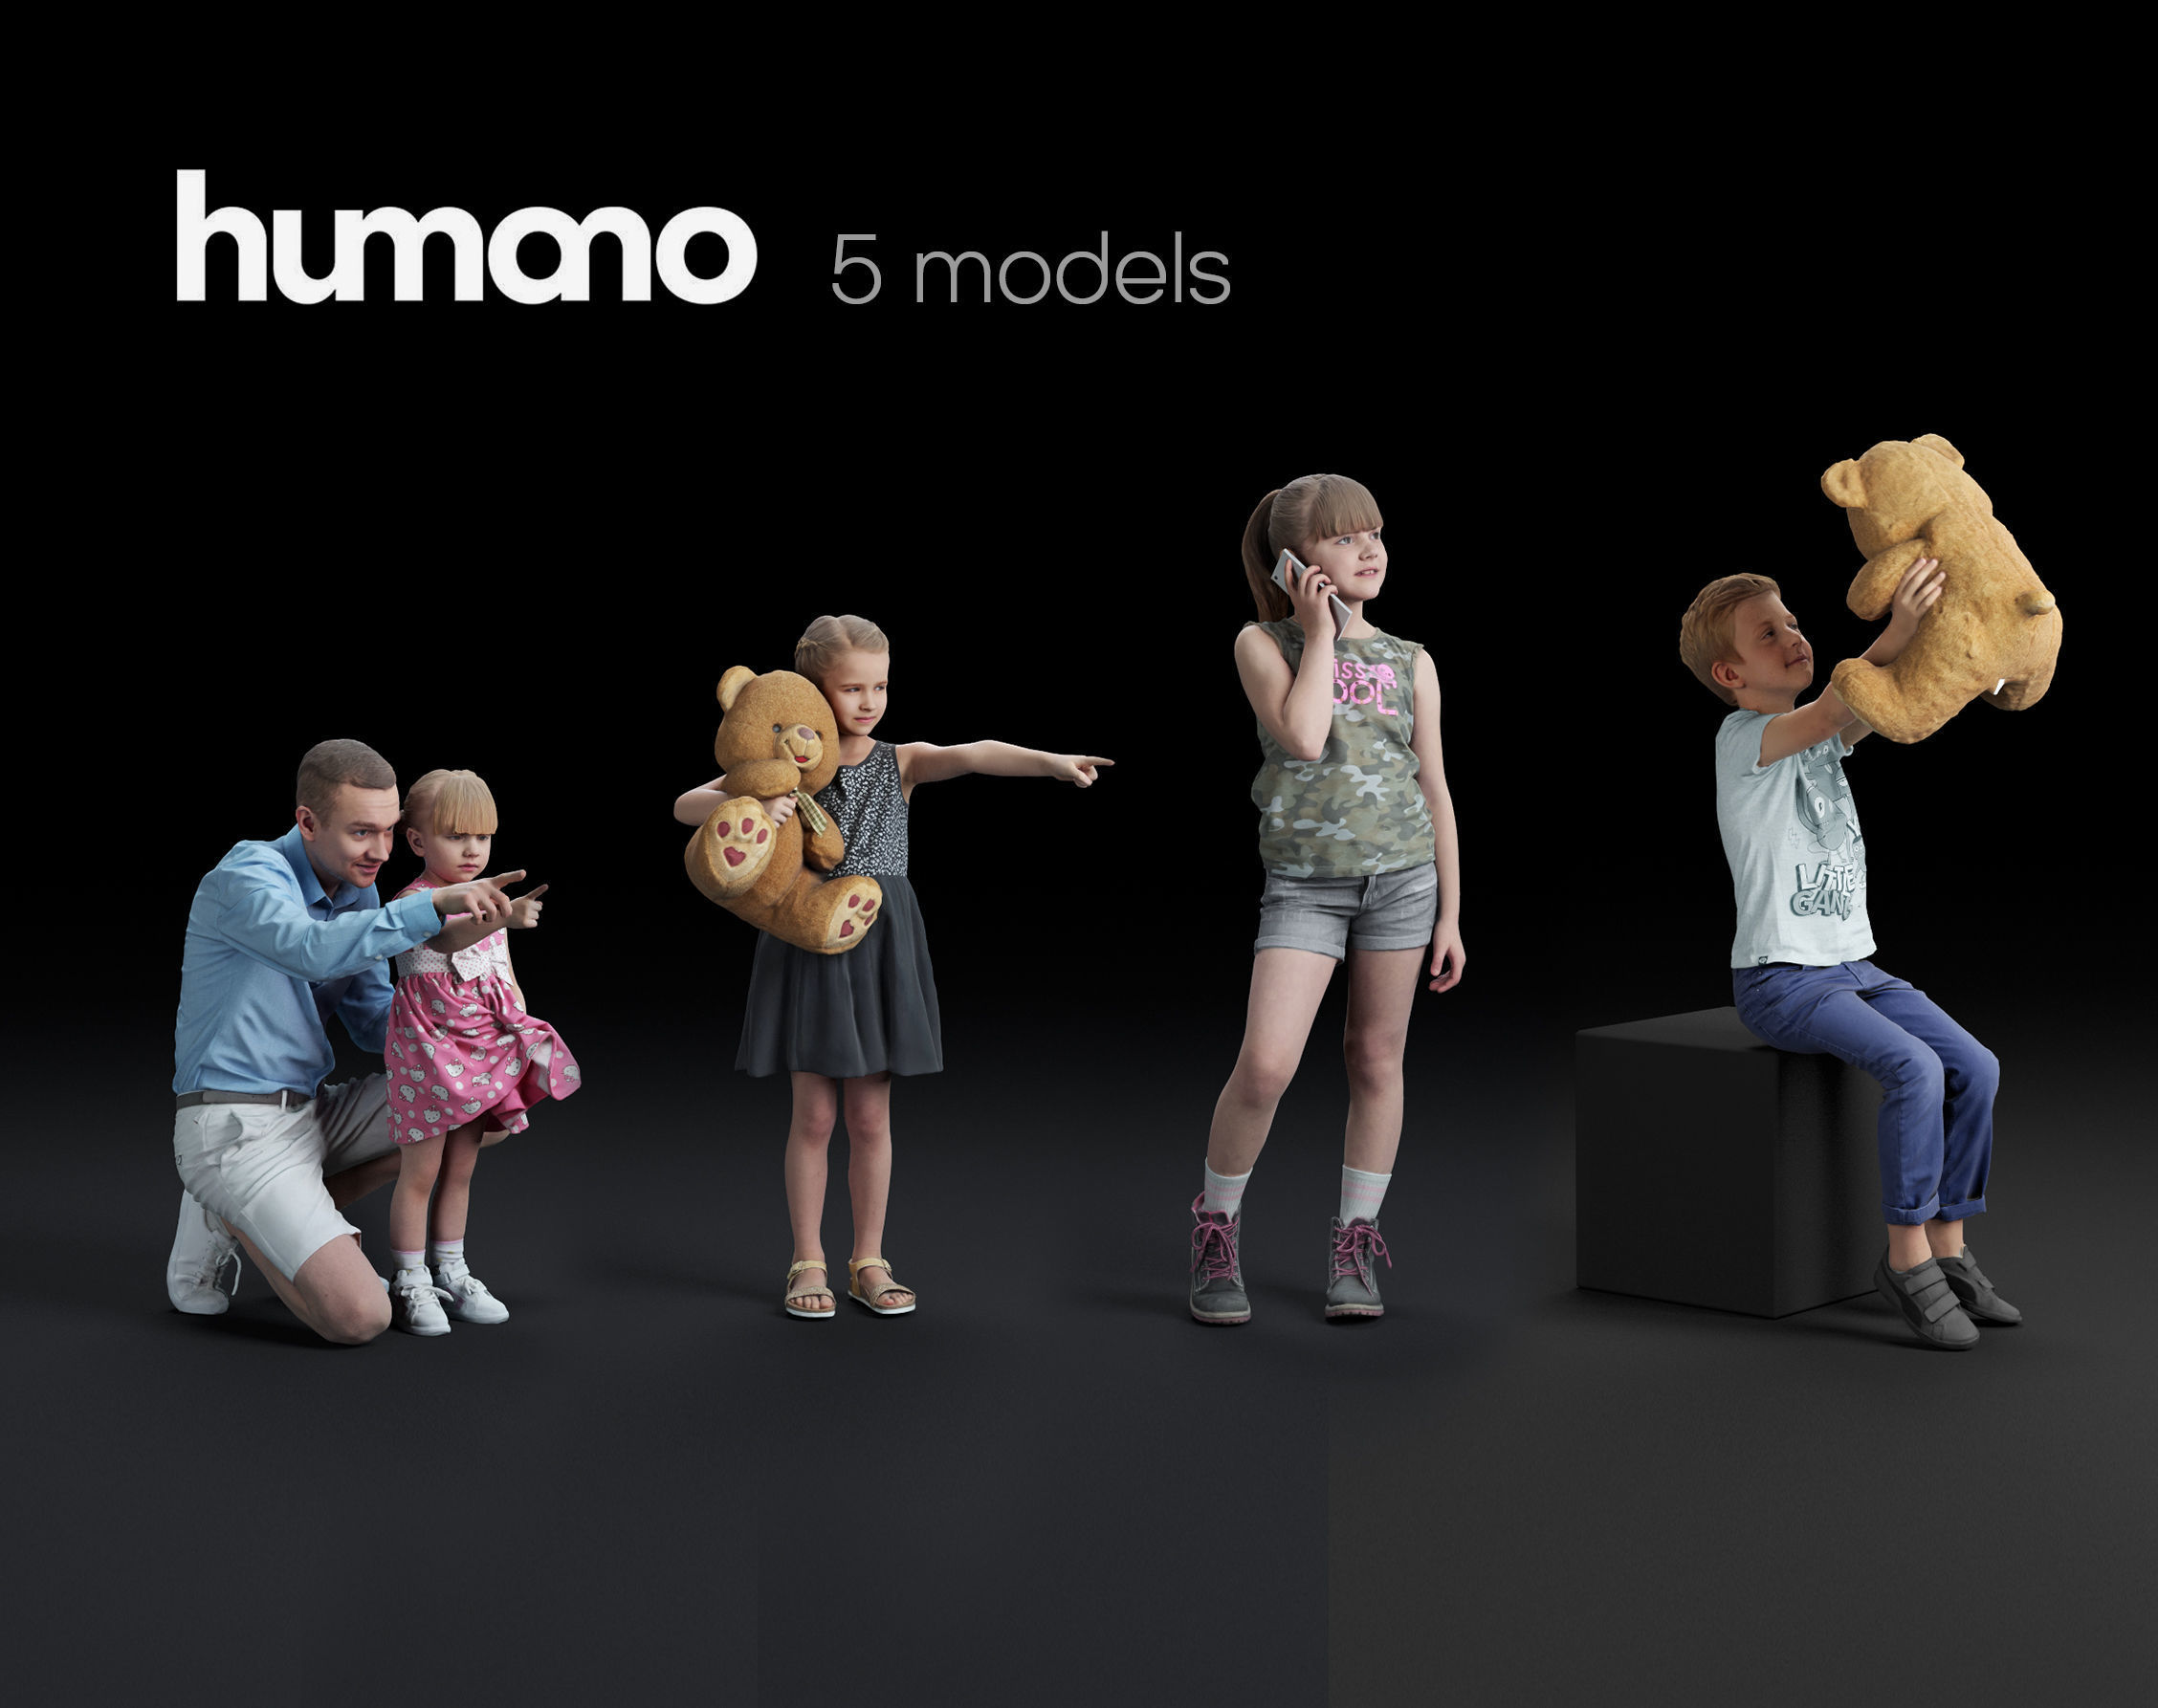 Humano 5-Pack - PEOPLE - CASUAL - HOME - 5x 3d models 05A